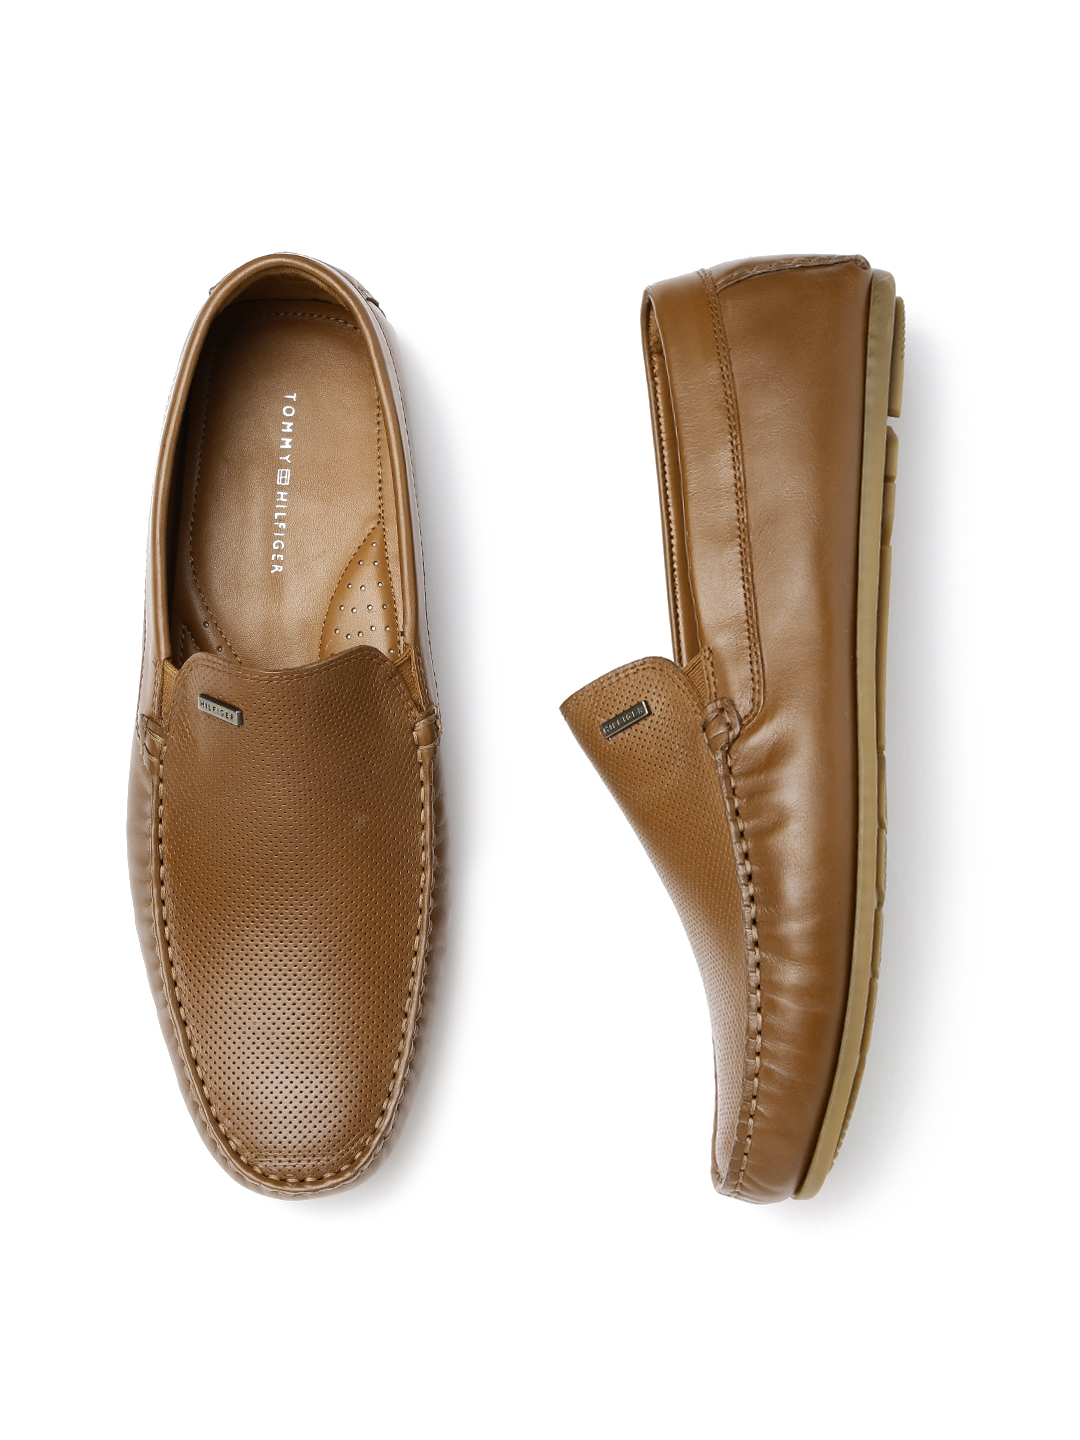 9345fed3a Buy Tommy Hilfiger Men Brown Textured Leather Loafers - Casual Shoes ...